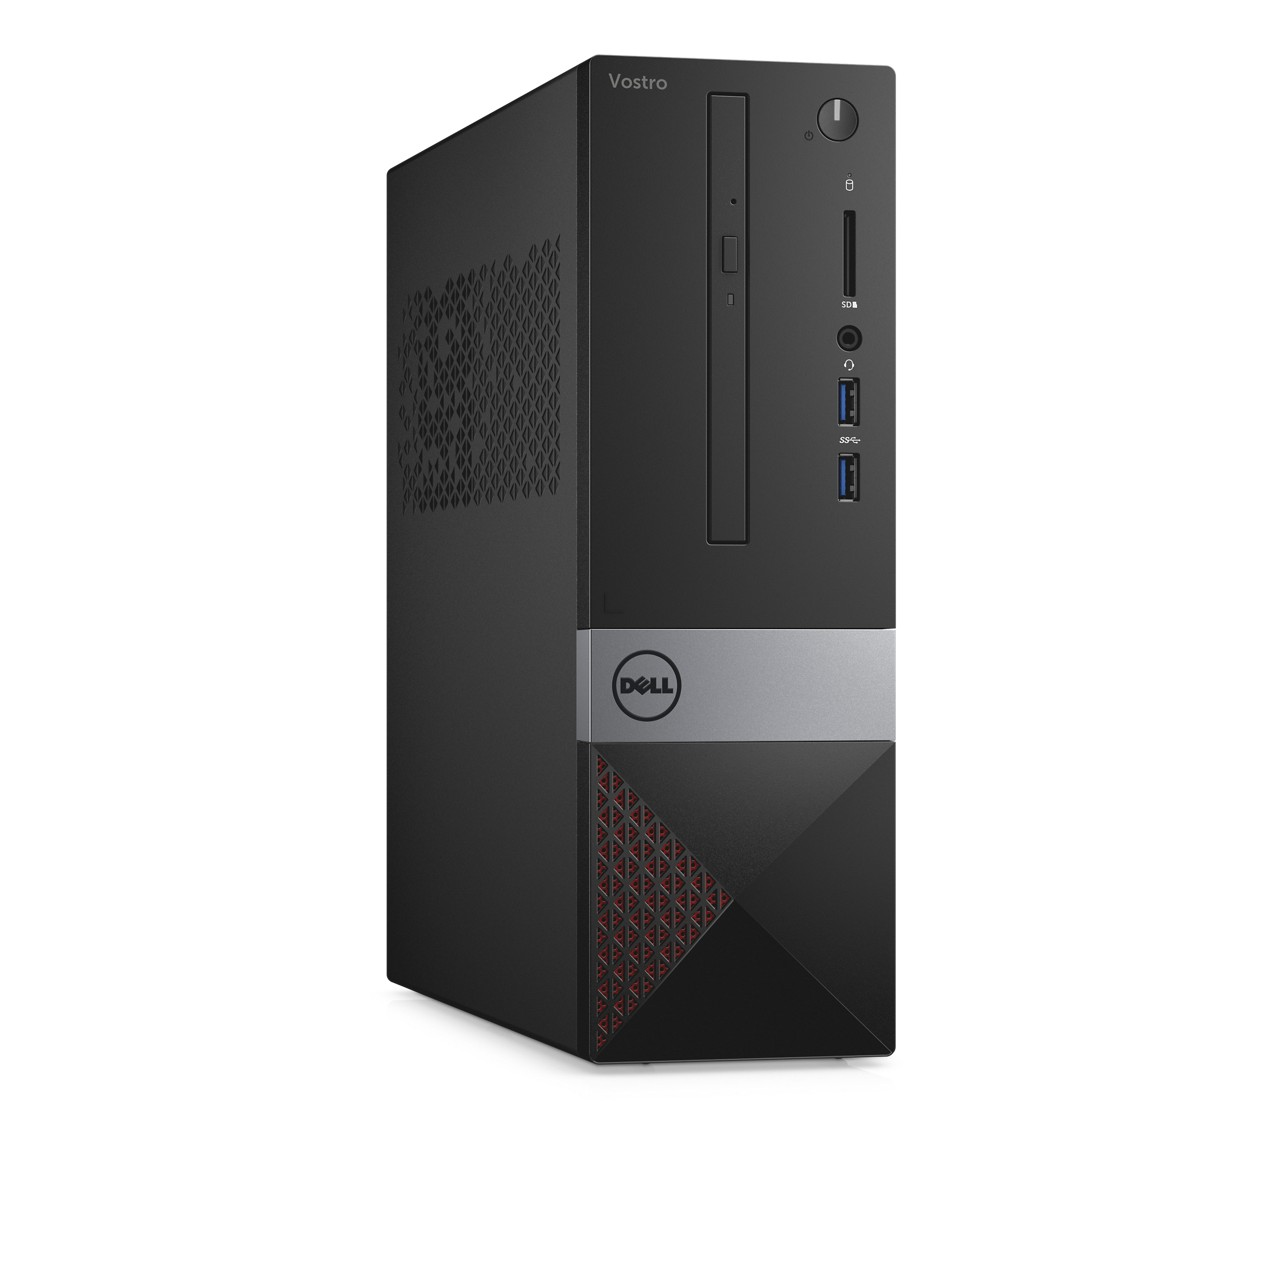 Dell PC Vostro 3268 SF i3-7100/4GB/500GB/VGA/HDMI/DVD-RW/WiFi+BT/W10P/3RNBD/Černý